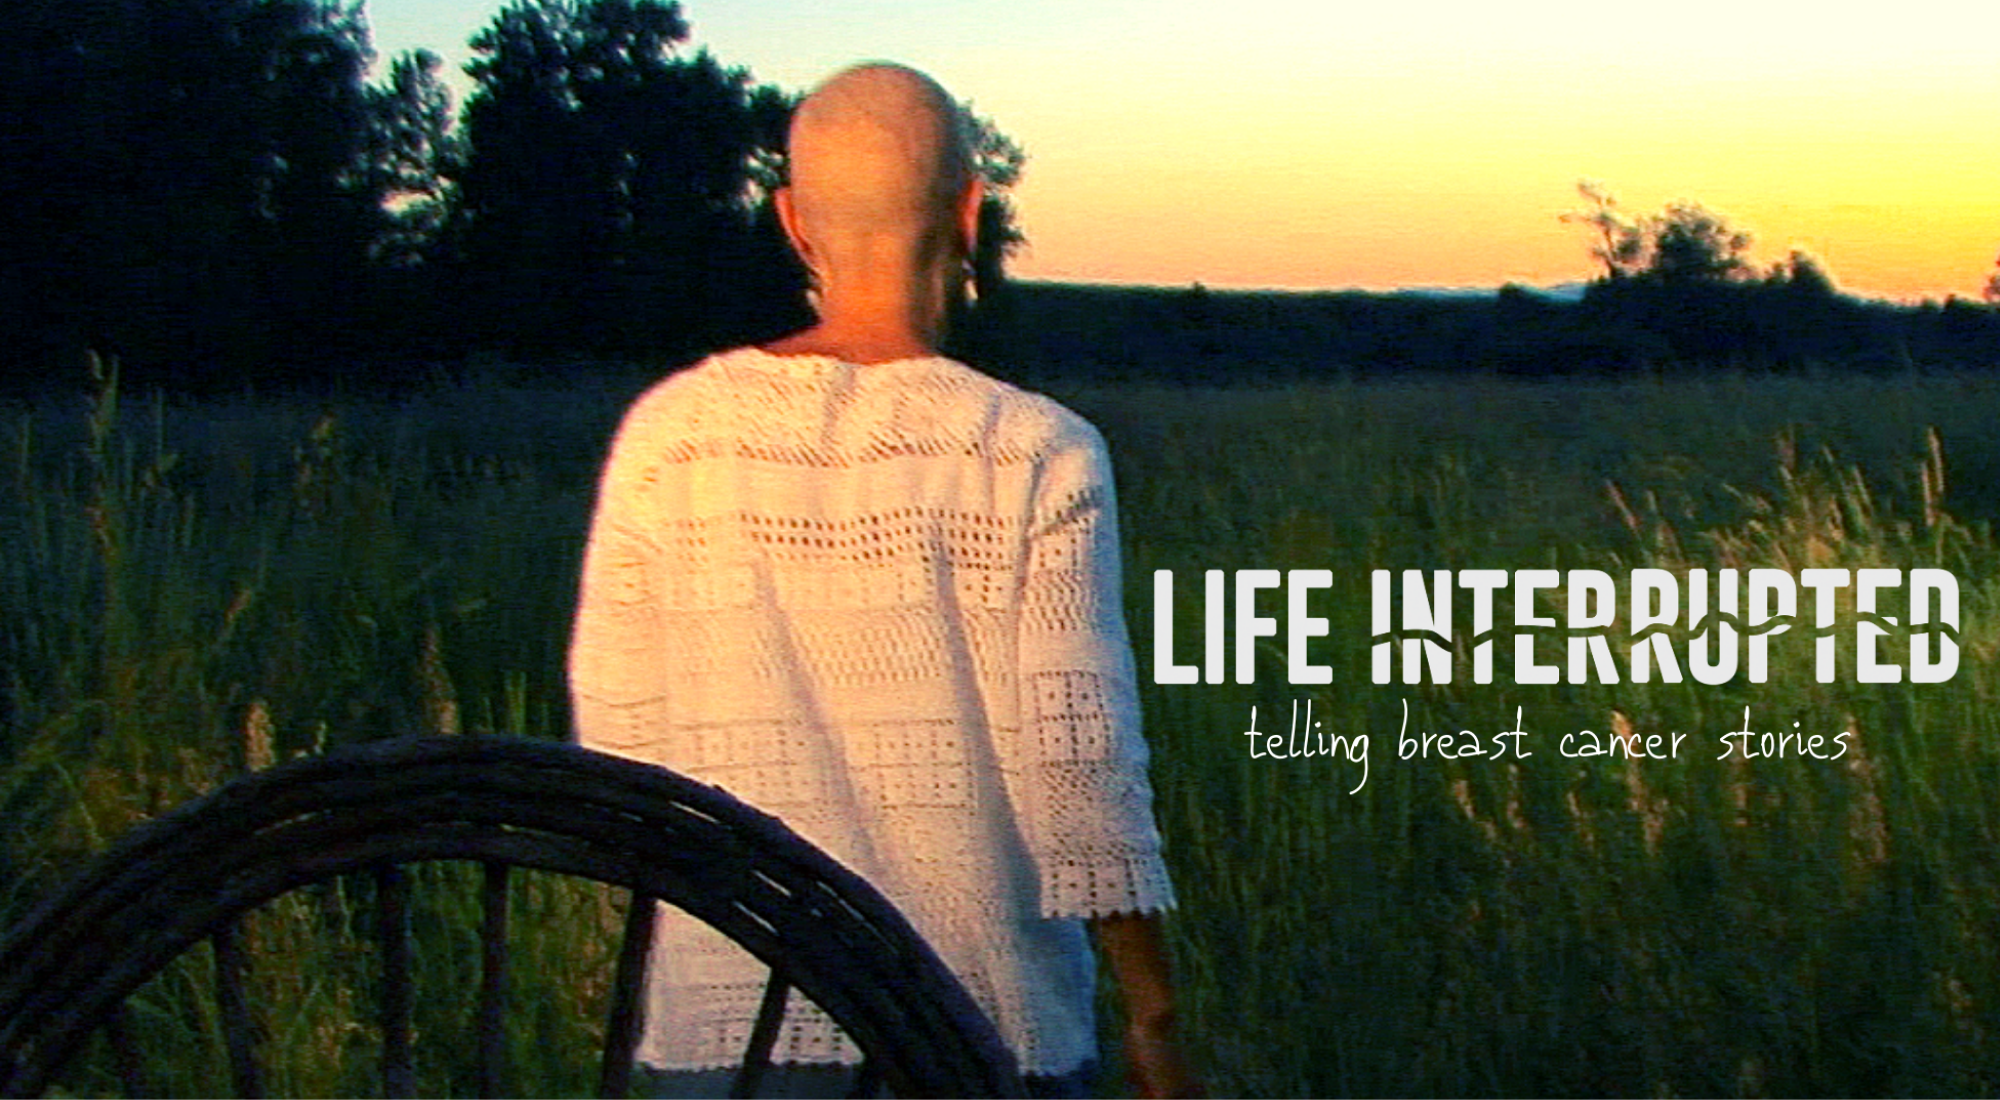 Life Interrupted: Telling Breast Cancer Stories